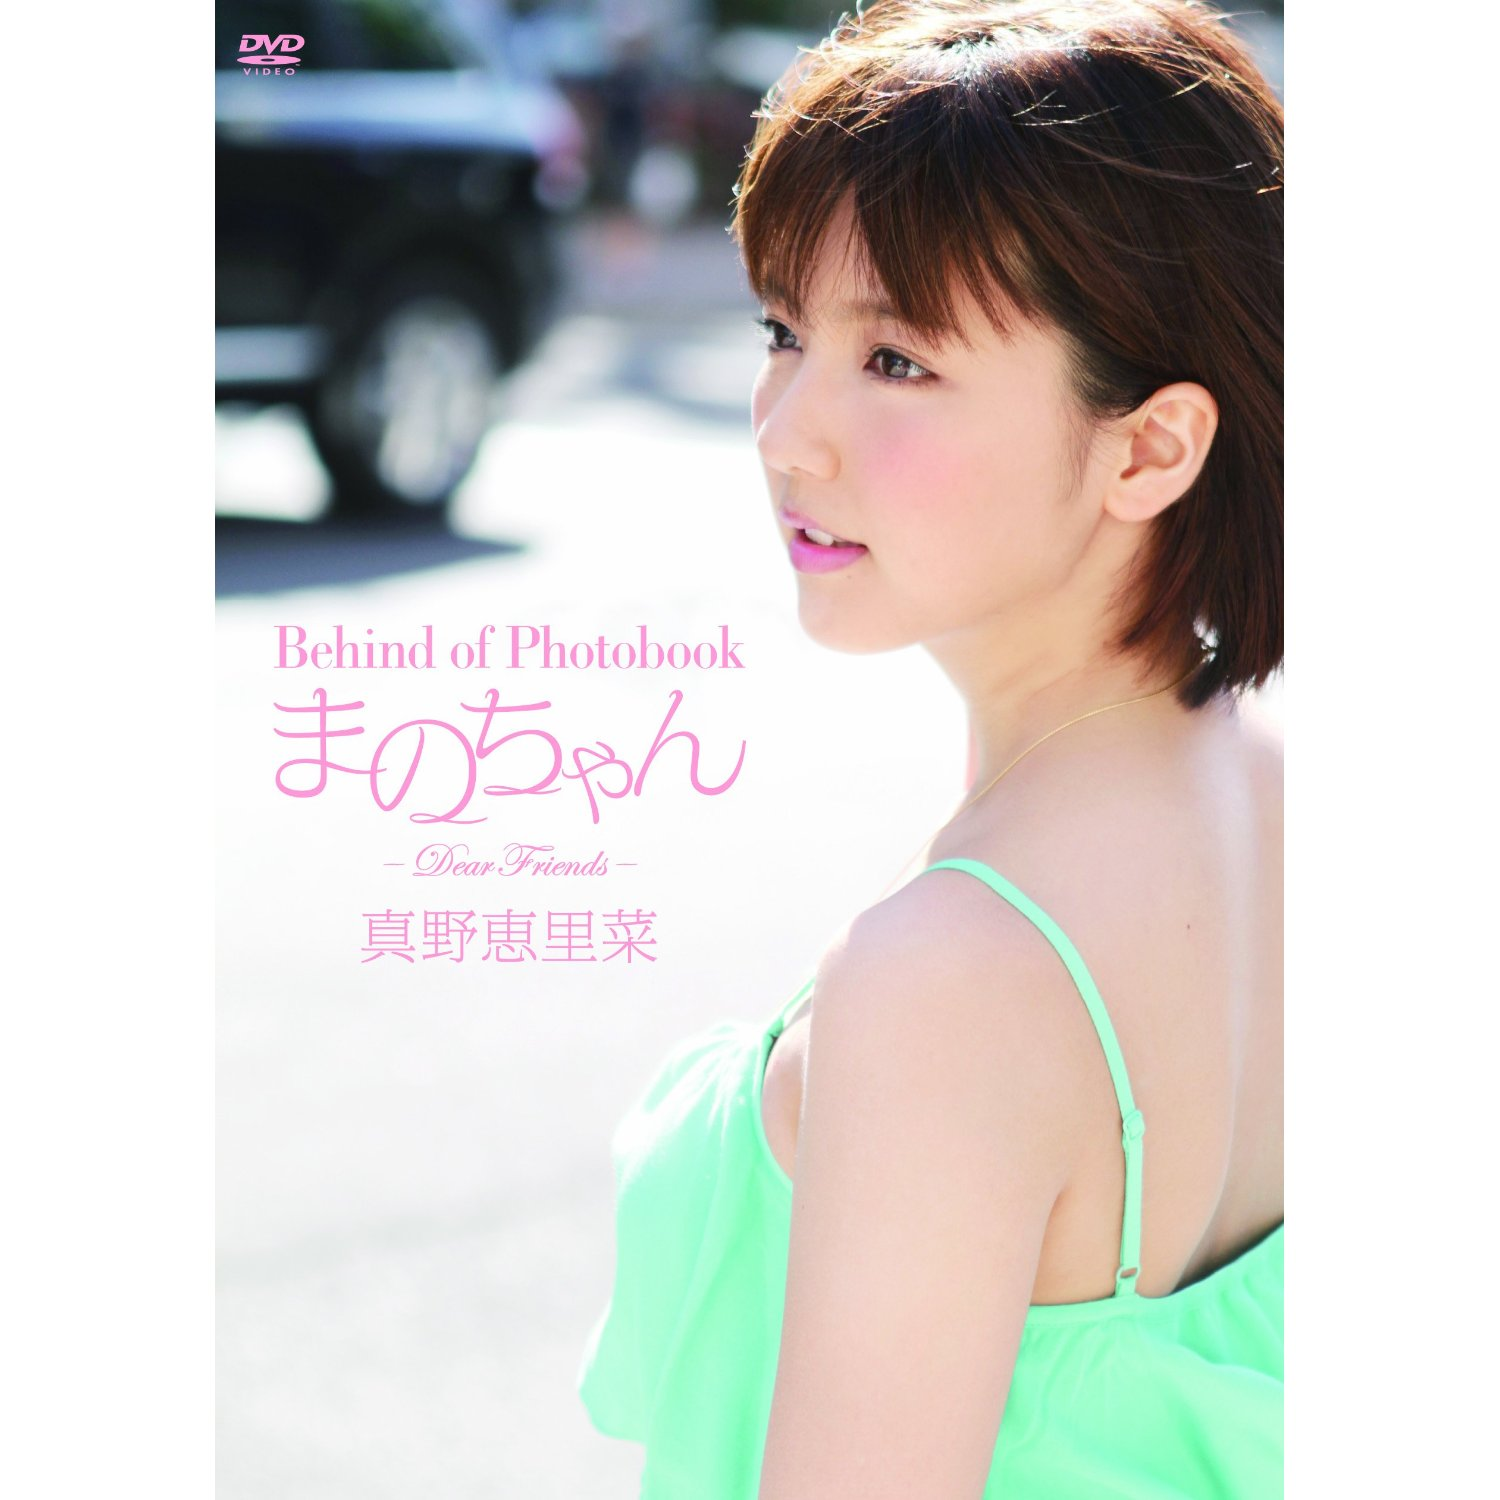 真野恵里菜「Behind of Photobook まのちゃん〜Dear Friends〜」DVD